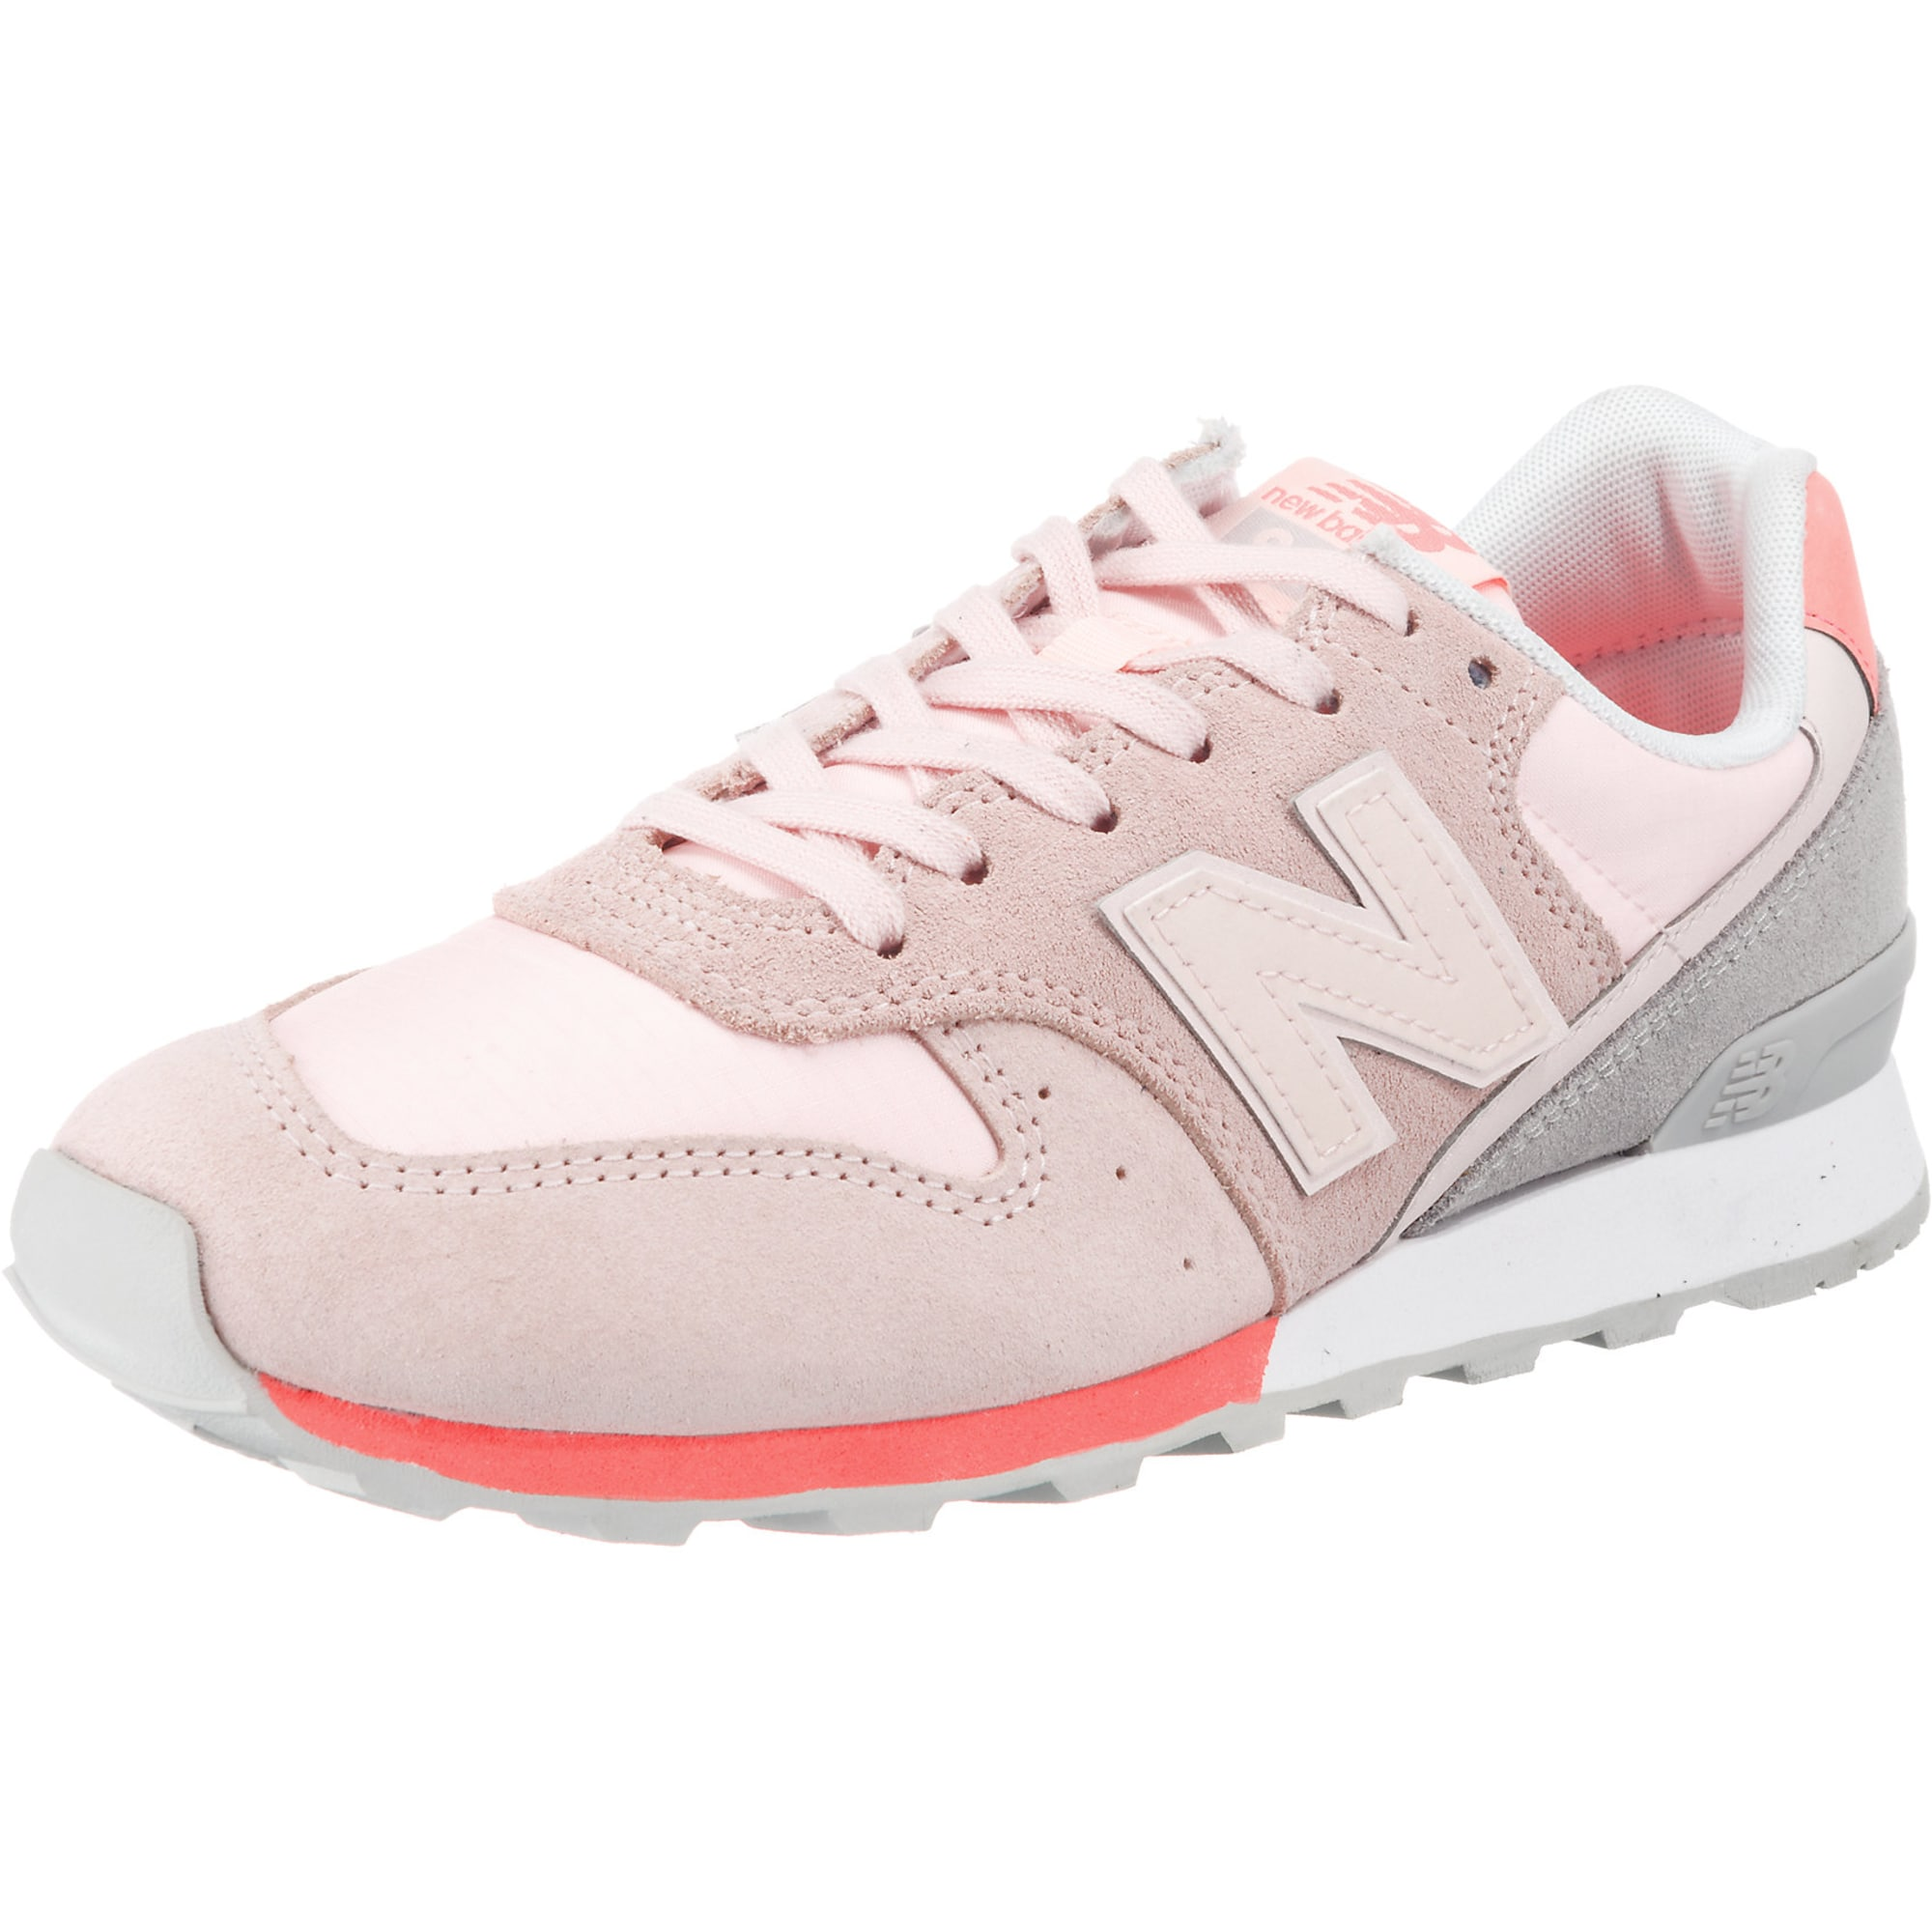 New Balance, Dames Sneakers laag 'WR996-STG-D', lichtoranje / pink / oudroze